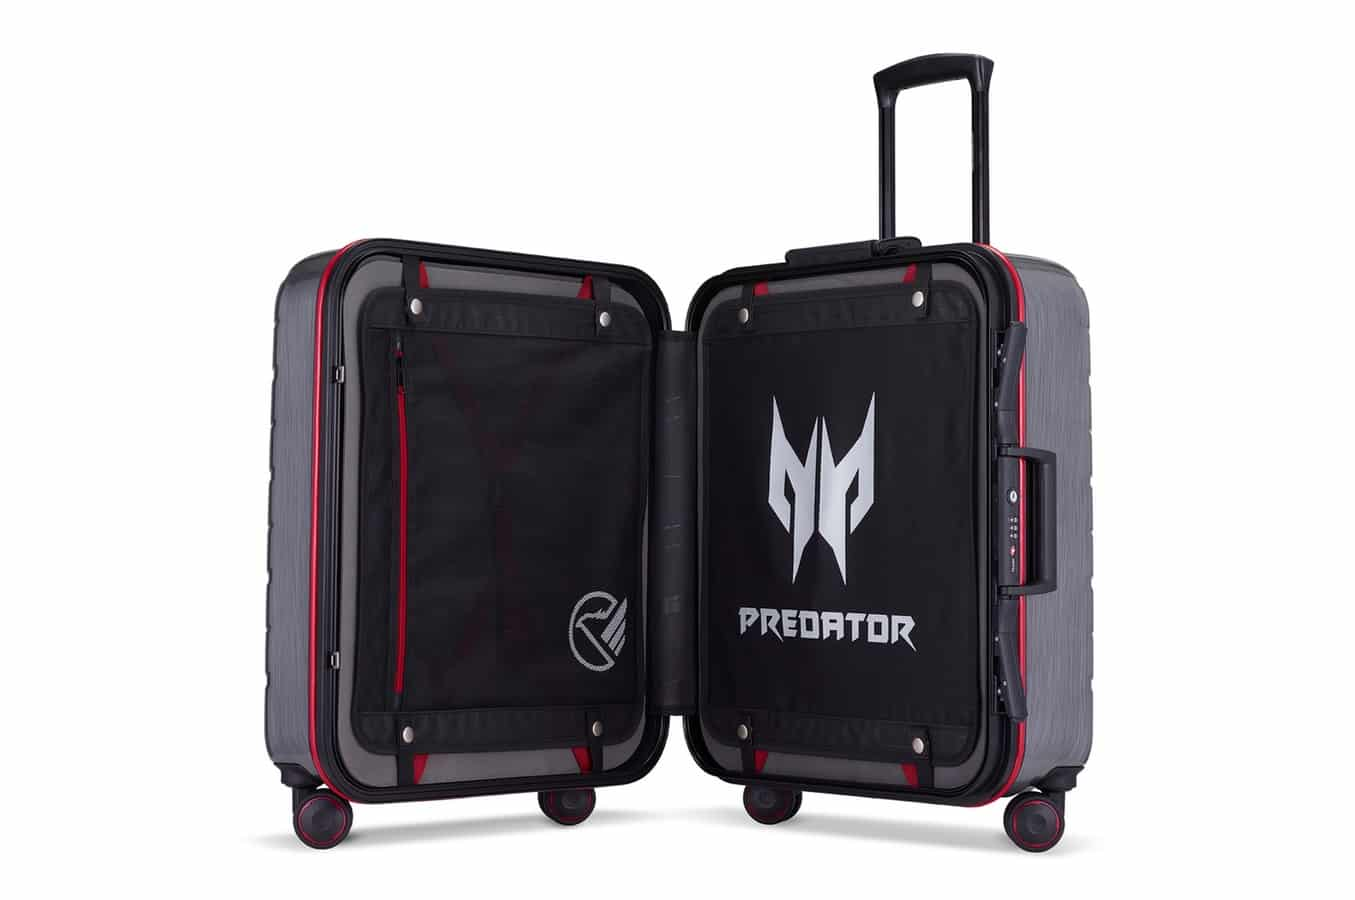 test du acer predator g1 un ordinateur pour gamer petit mais costaudle blog officiel de julien. Black Bedroom Furniture Sets. Home Design Ideas